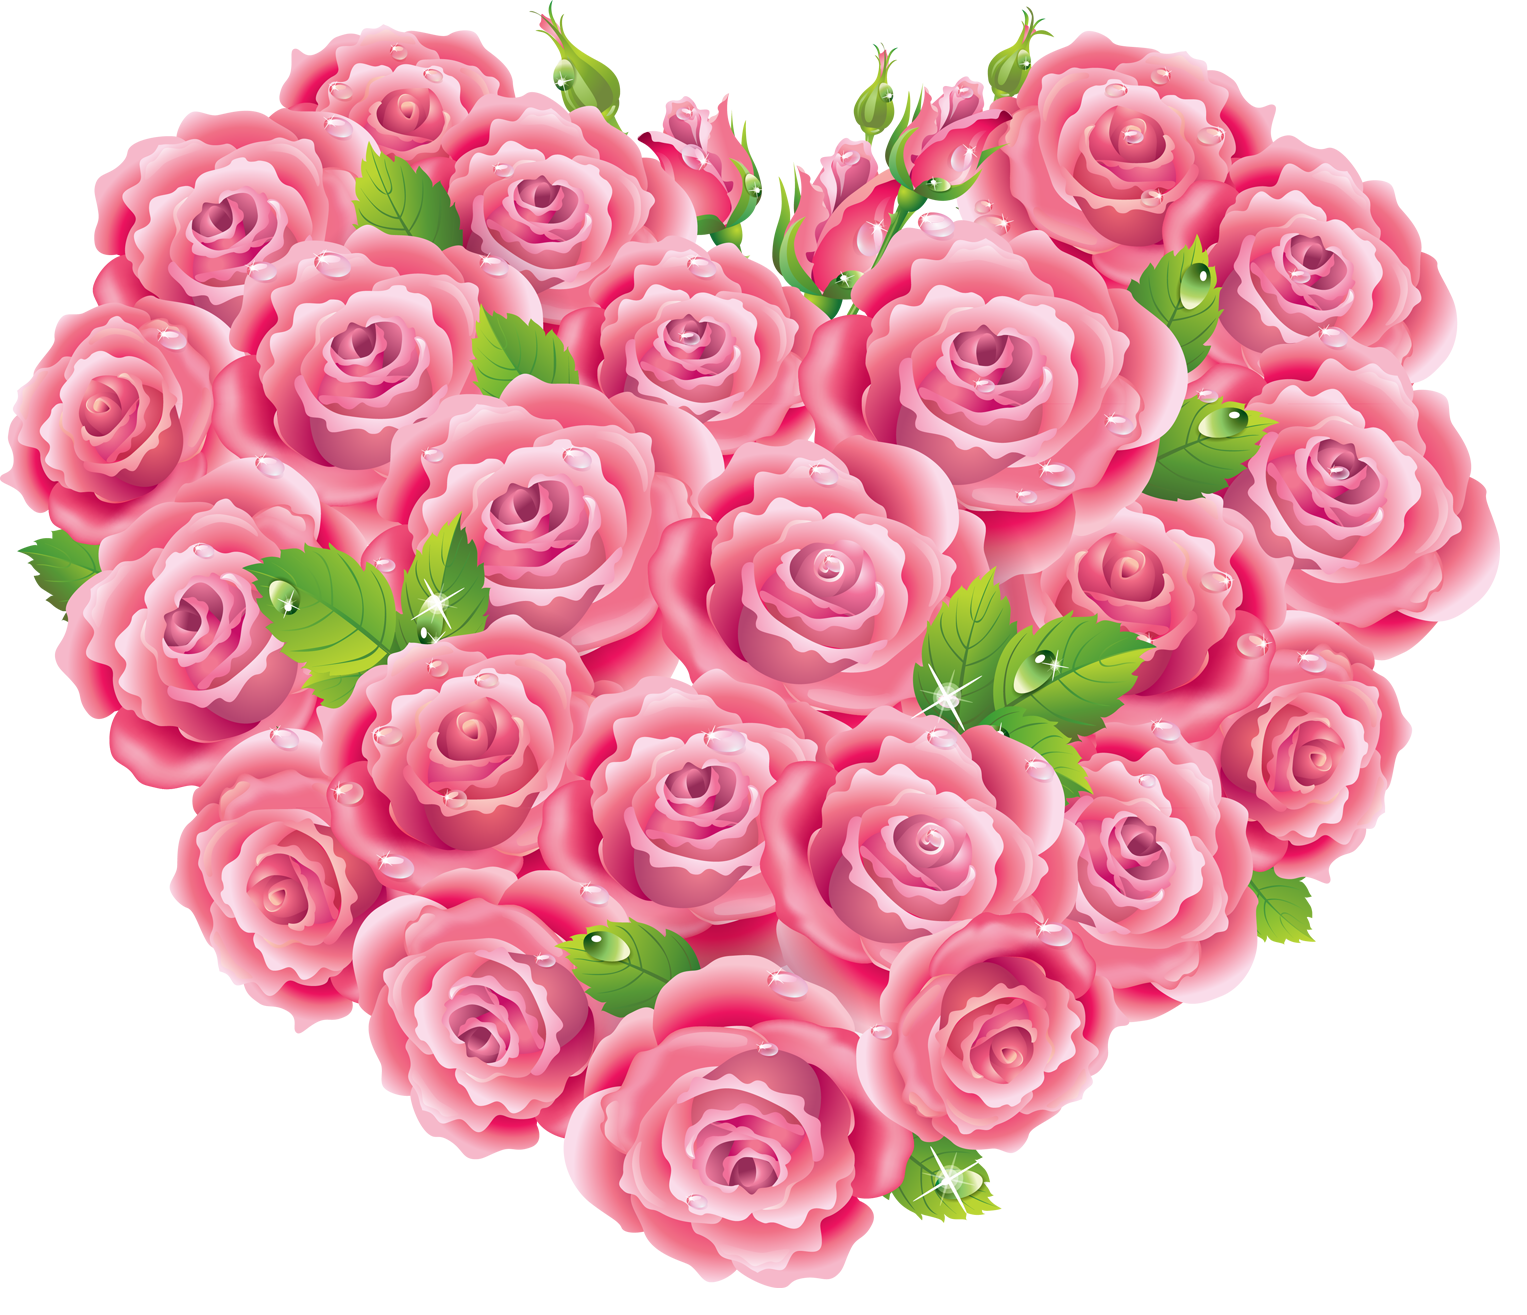 Pink heart clipart graphic download Pink_Roses_Heart_Clipart.png?m=1373234400 graphic download